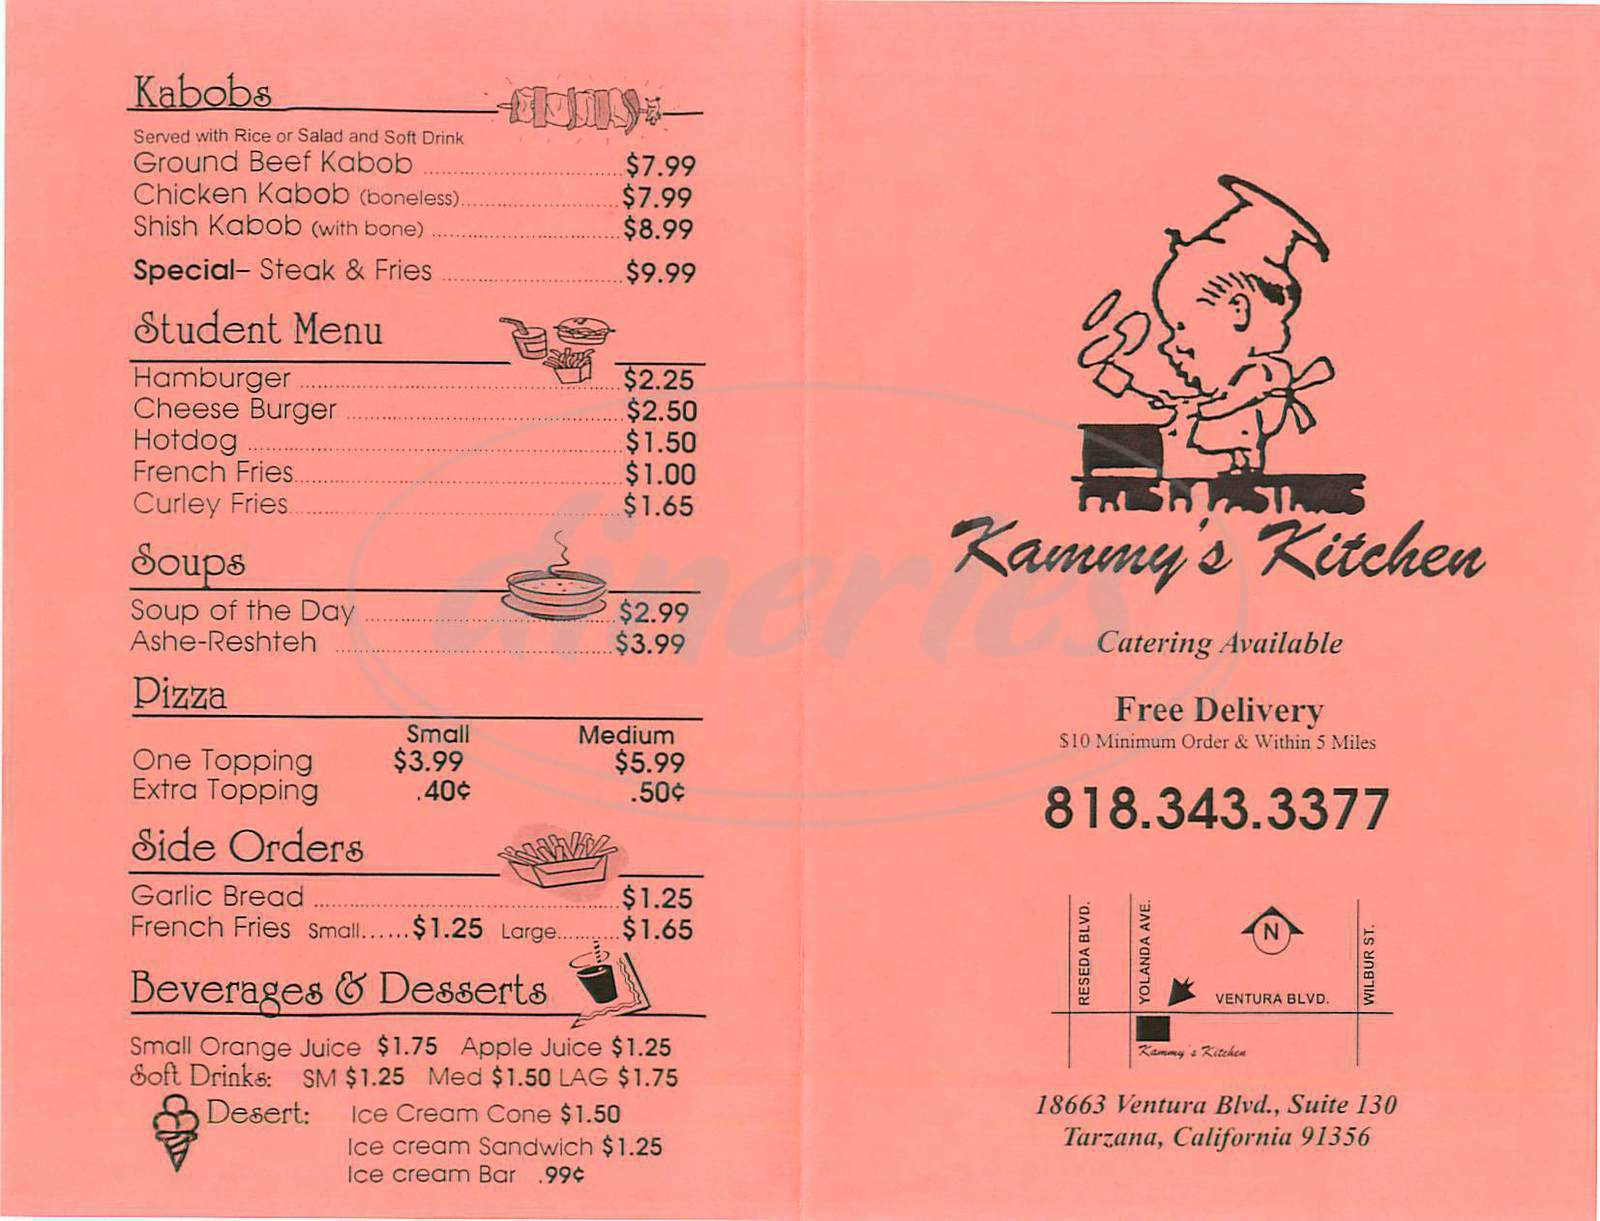 menu for Kammy's Kitchen